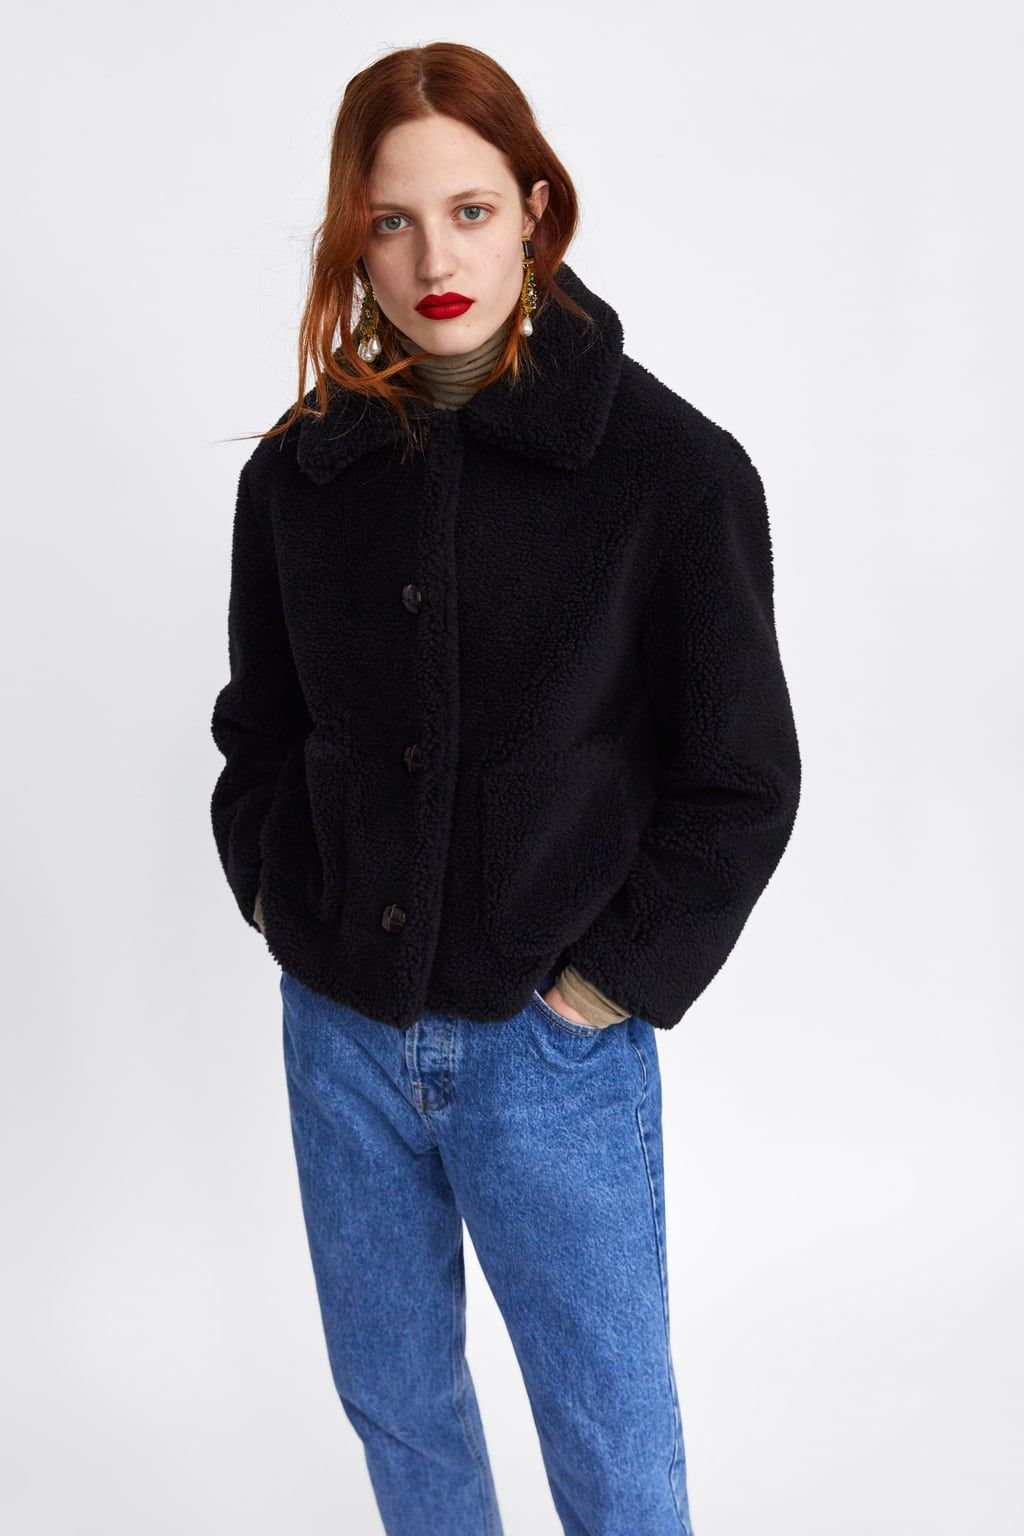 FAUXSHEARLINGTEXTURED JACKET Available in more colours